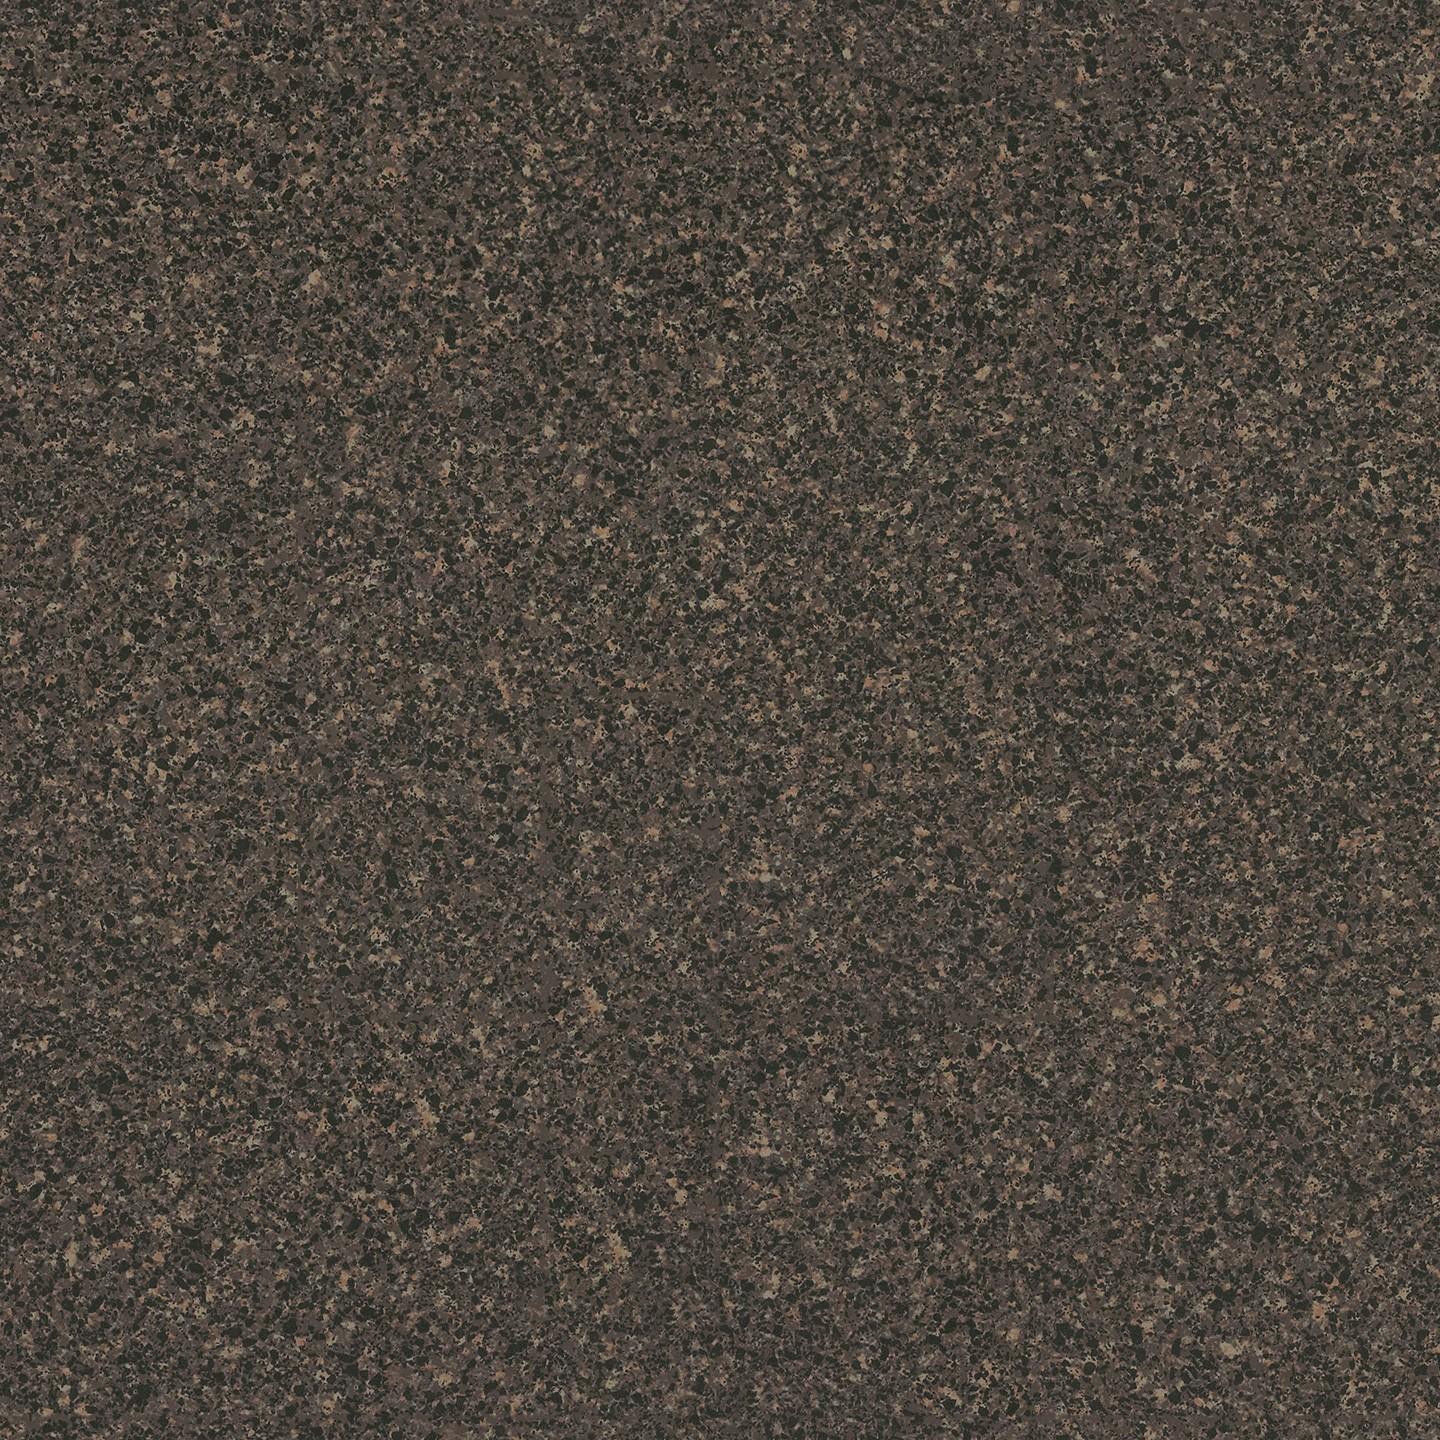 4551 Blackstar Granite - Wilsonart